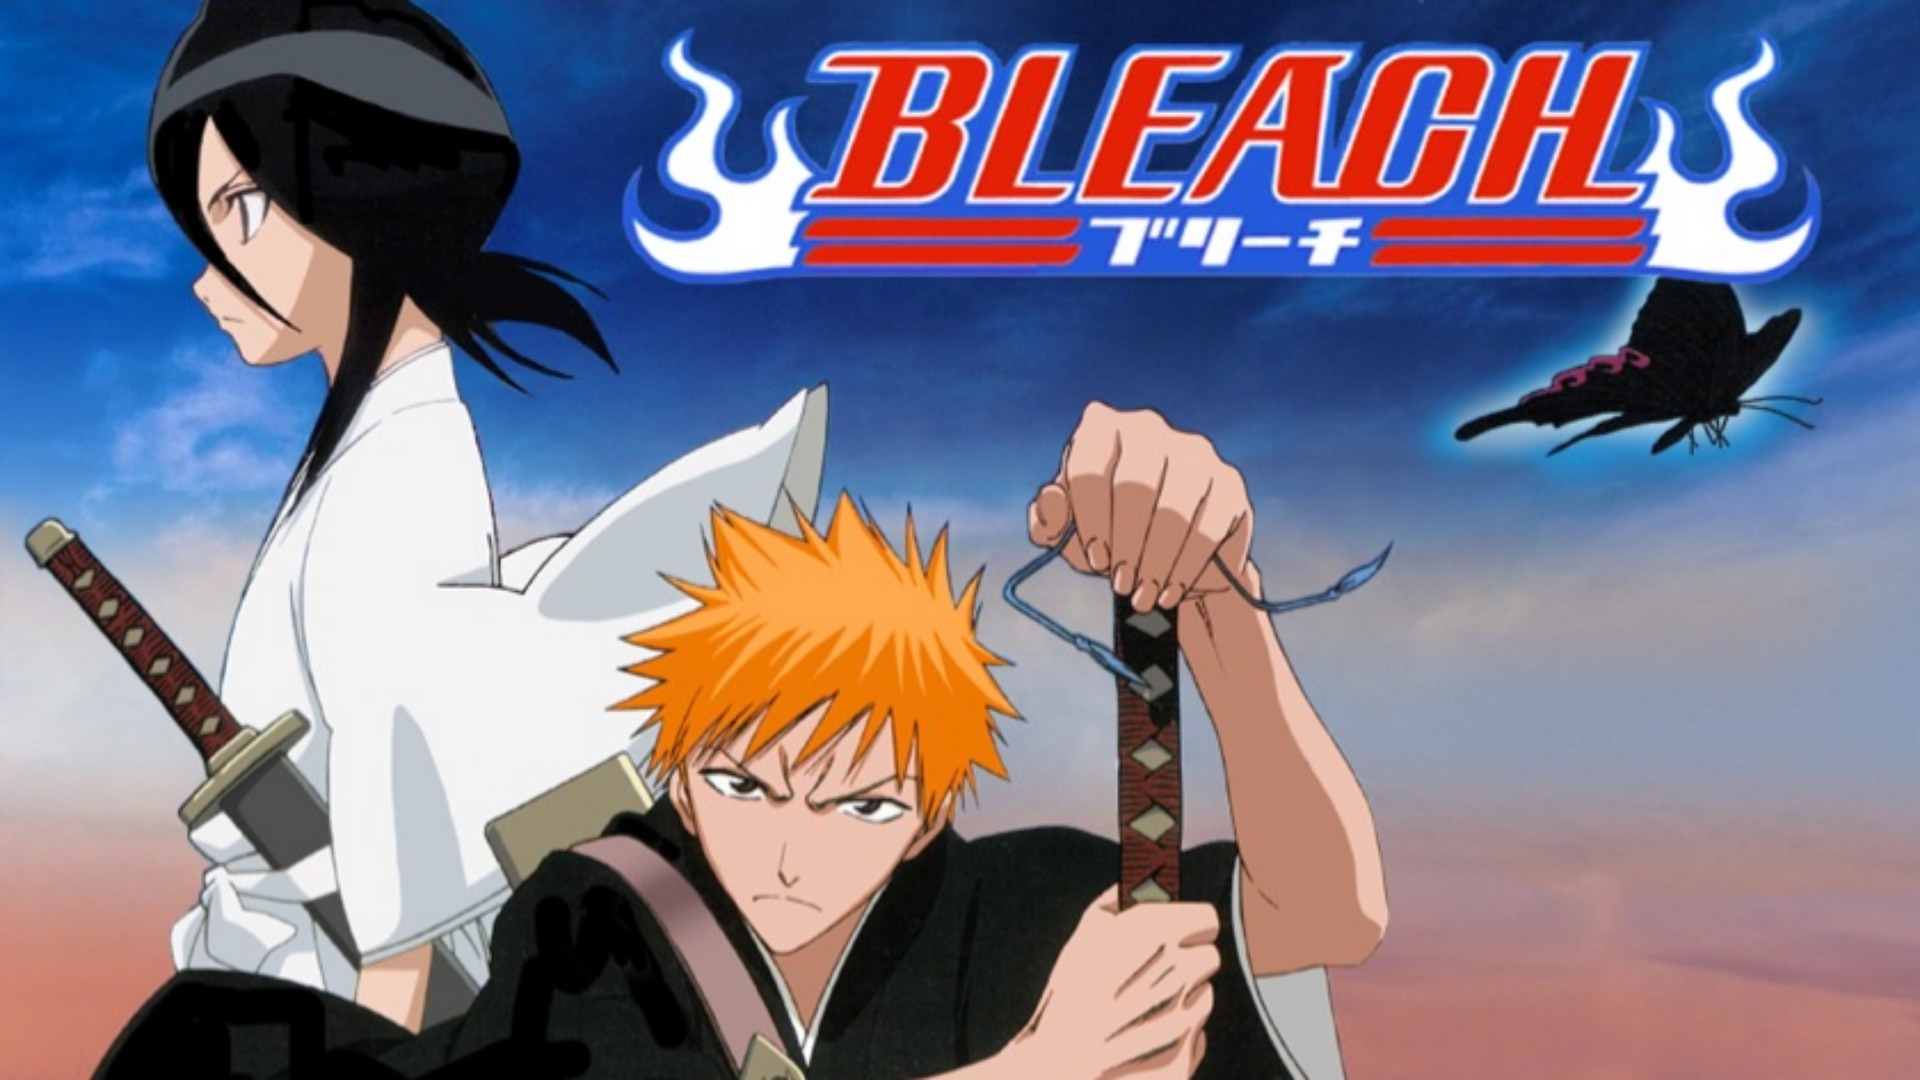 At the height of its popularity, this anime was considered one of the Big Three. A shonen juggernaut that dwarfed the rest in terms of action, character and sheer entertainment. While time and sub-par storytelling let it down right at the final hurdle, there's no denying that Bleach's legacy is dotted with moments of brilliance, especially with regards to its fight scenes. But which stood out the most?